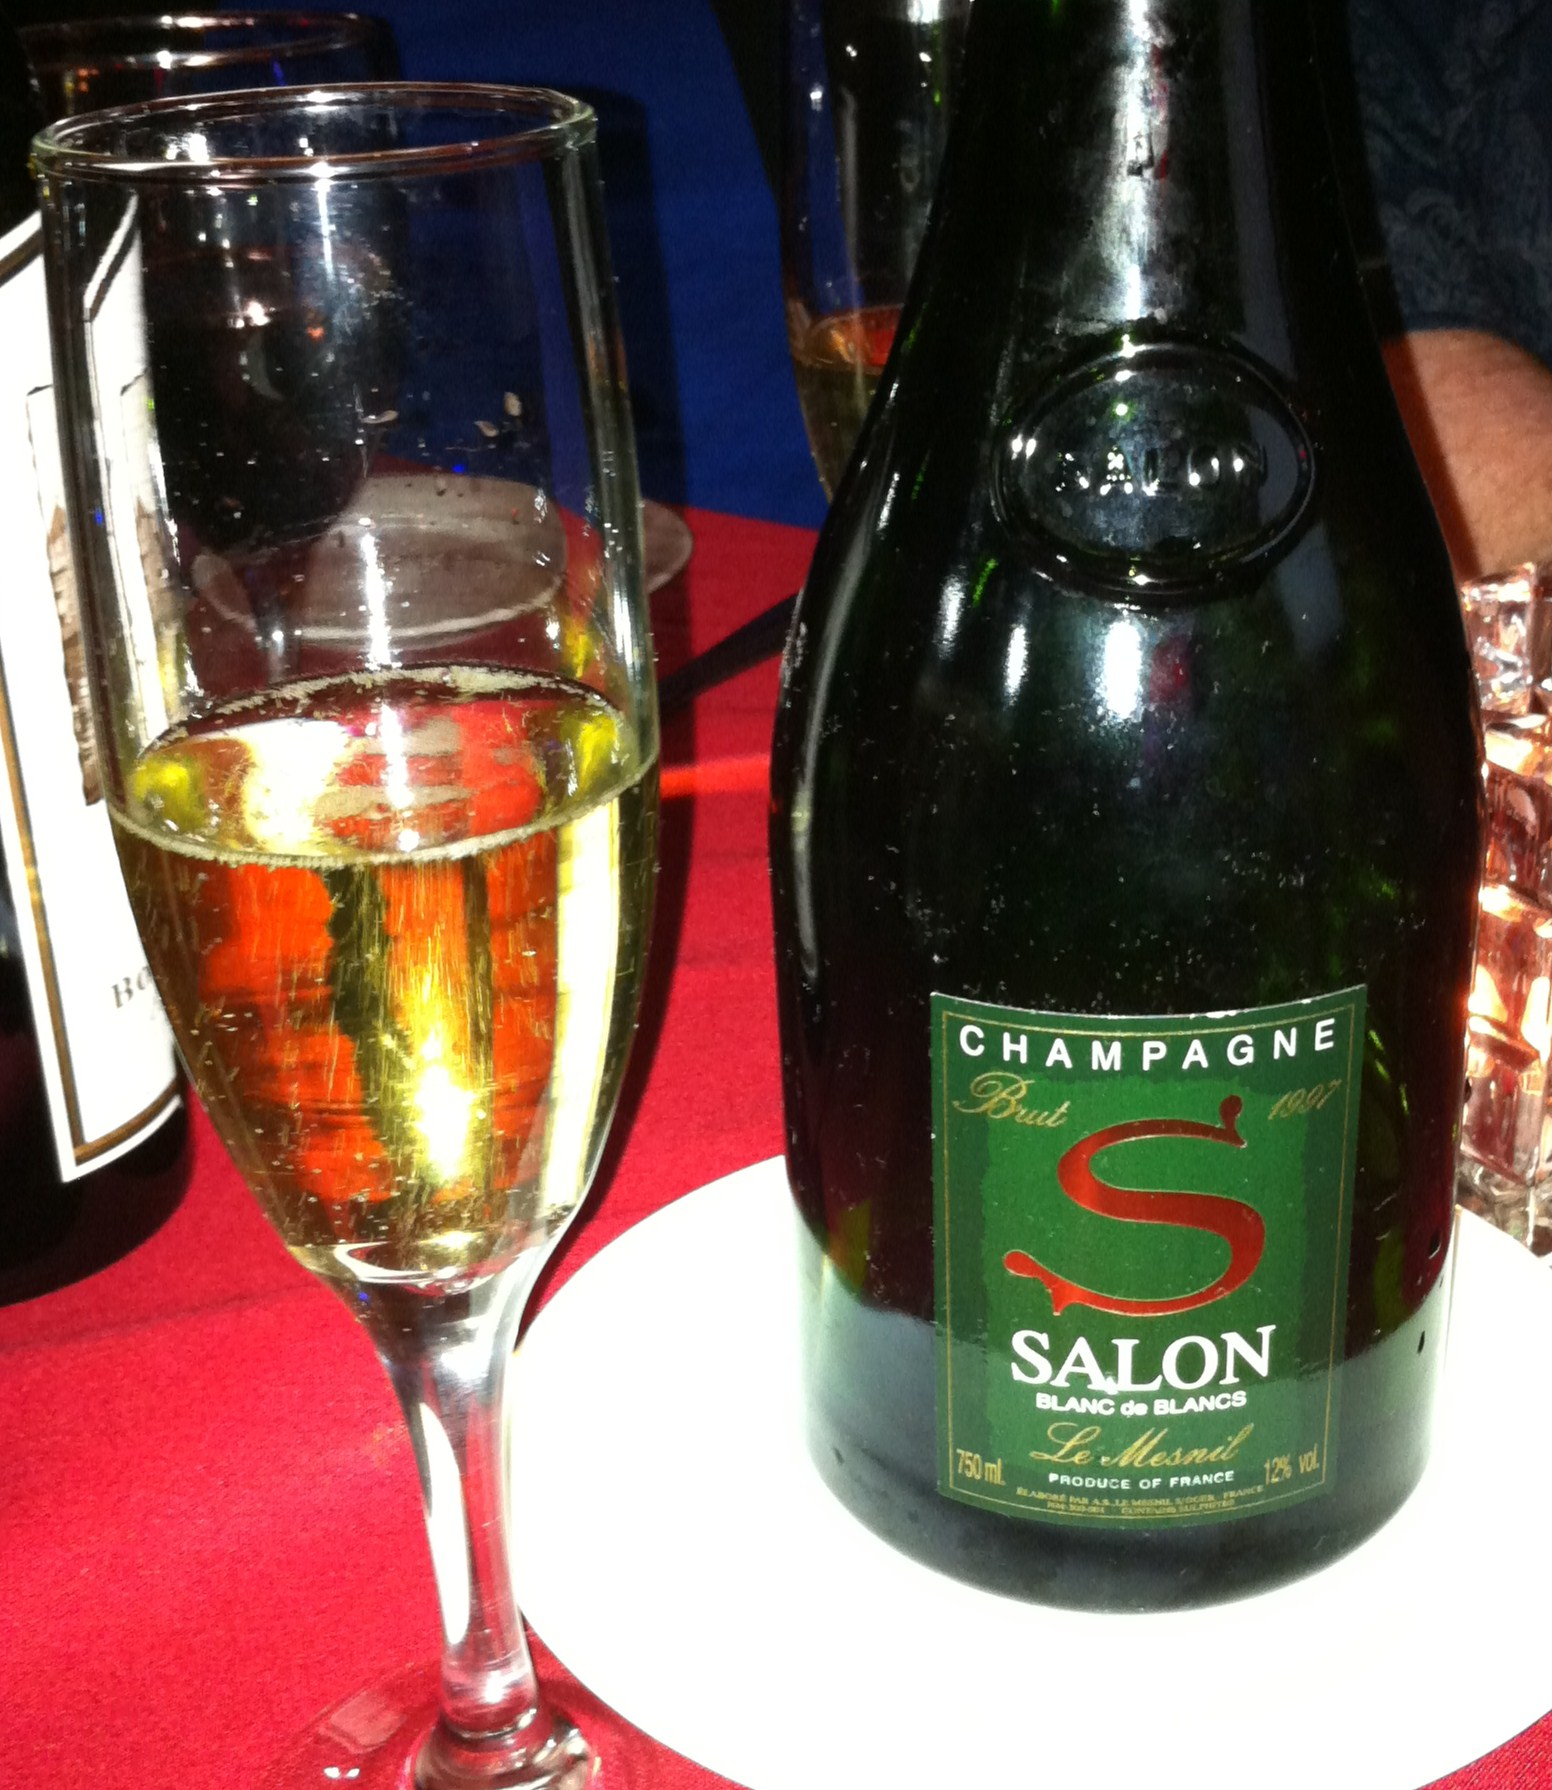 Champagne Salon – Wikipedia